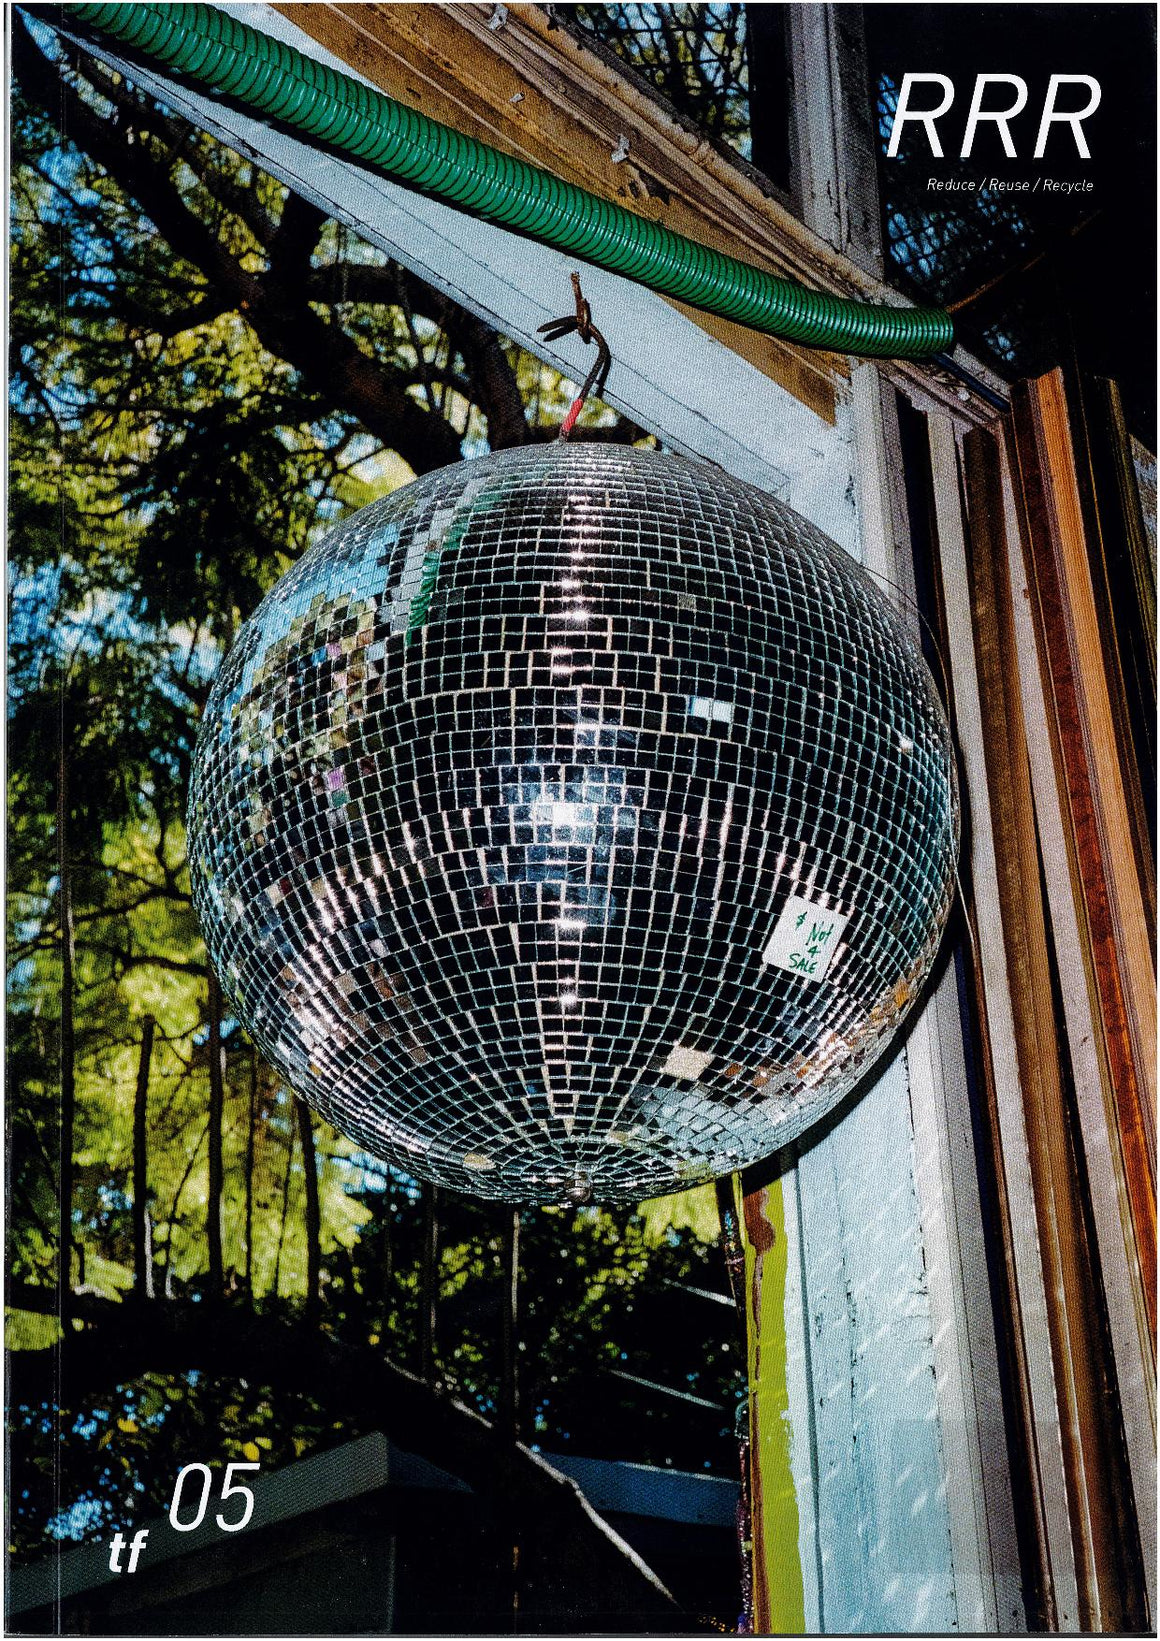 Magazine cover from Terra Firma Magazine featuring a photograph of a disco ball